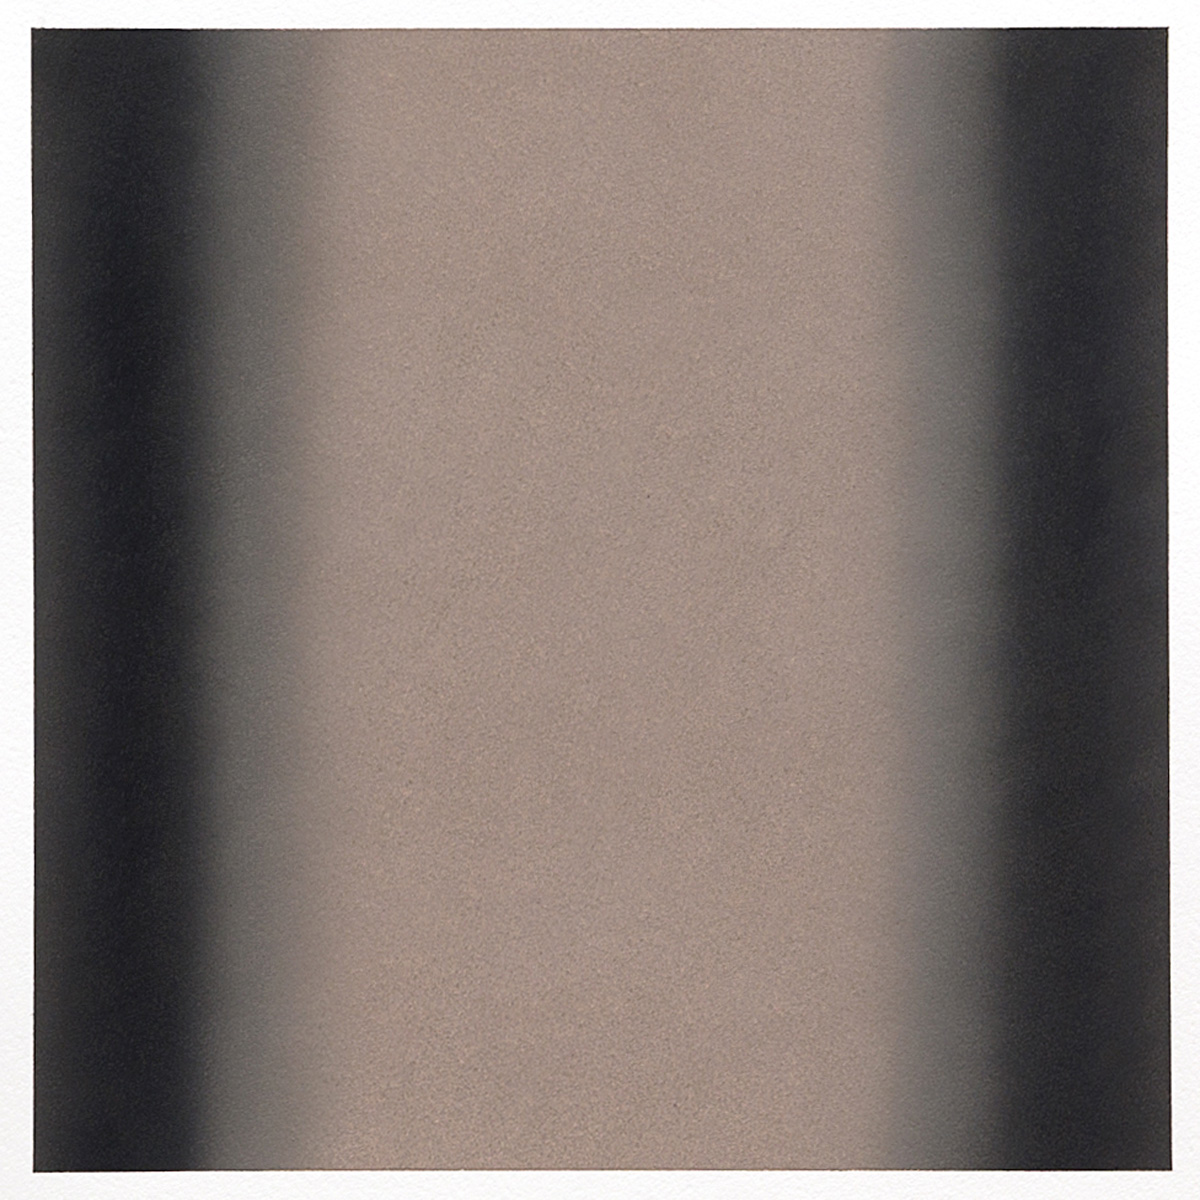 Gray Series #4, 2013, pastel on paper, image 14 x 14 in. (36 x 36 cm.), sheet 30 x 22 in. (76 x 56 cm.)